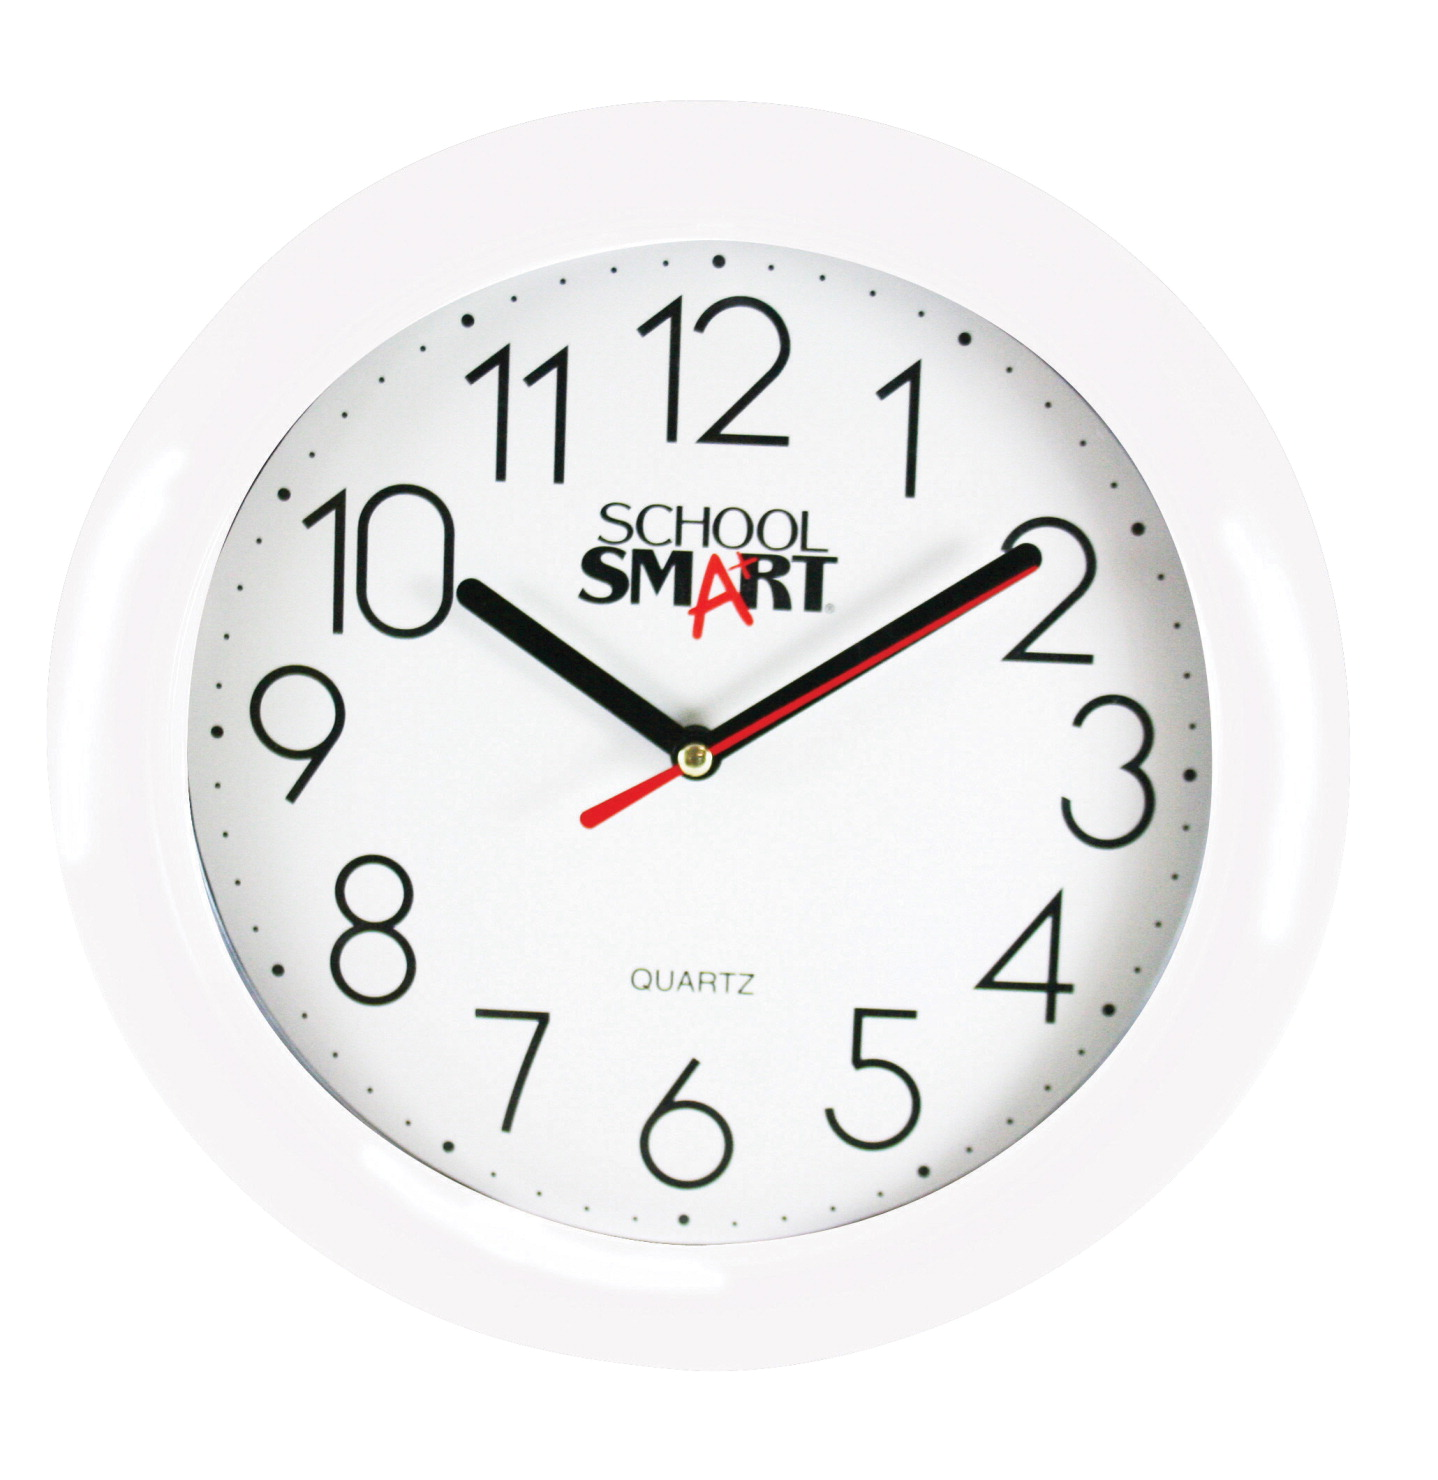 School smart wall clock 10 in white dialwhite frame classroom school smart wall clock 10 in white dialwhite frame amipublicfo Images